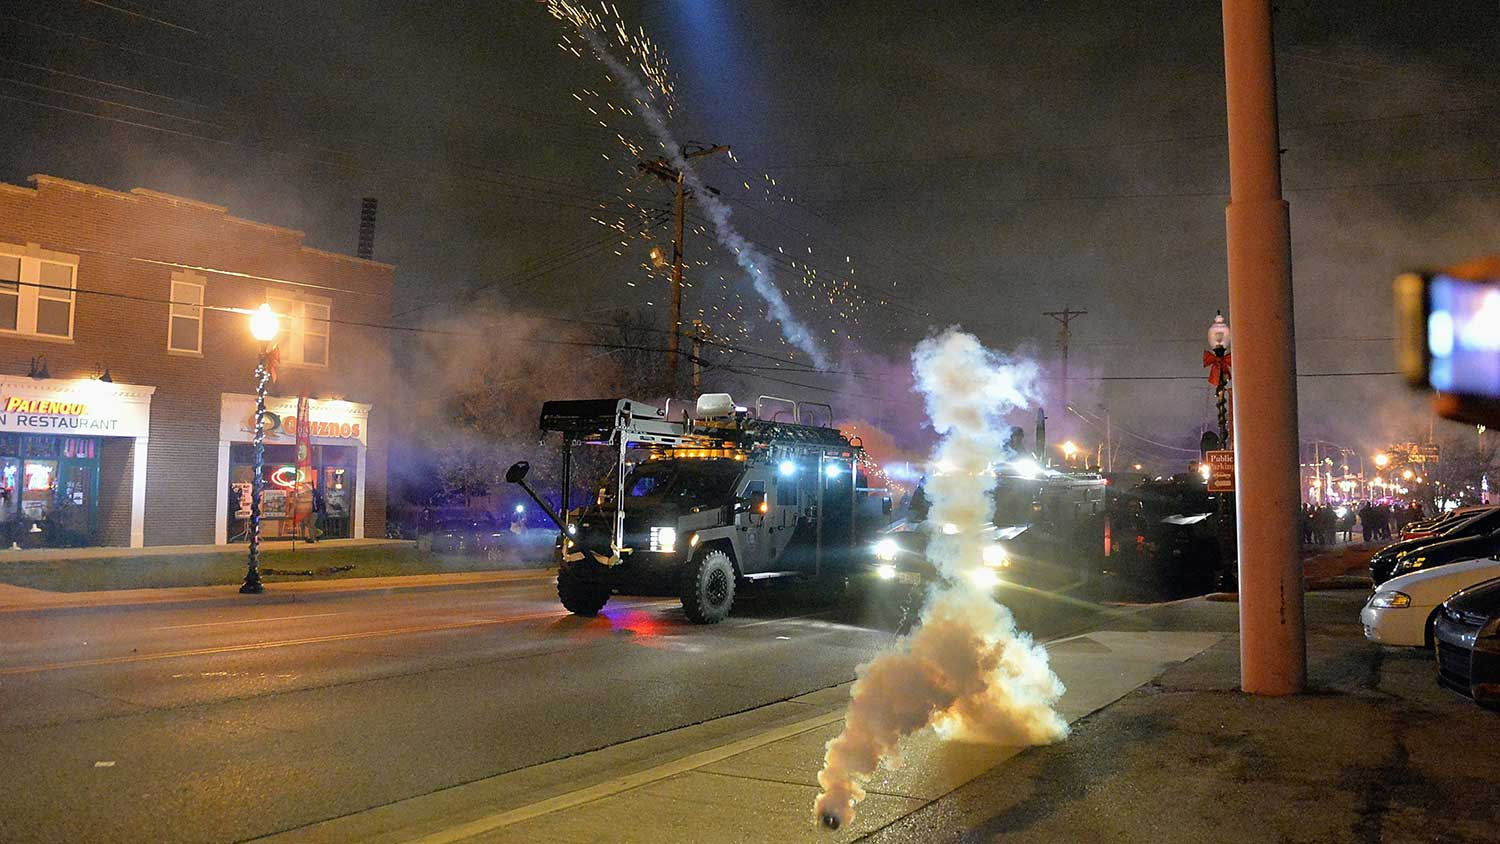 Police fire canisters of tear gas at demonstrators on Monday in Ferguson.